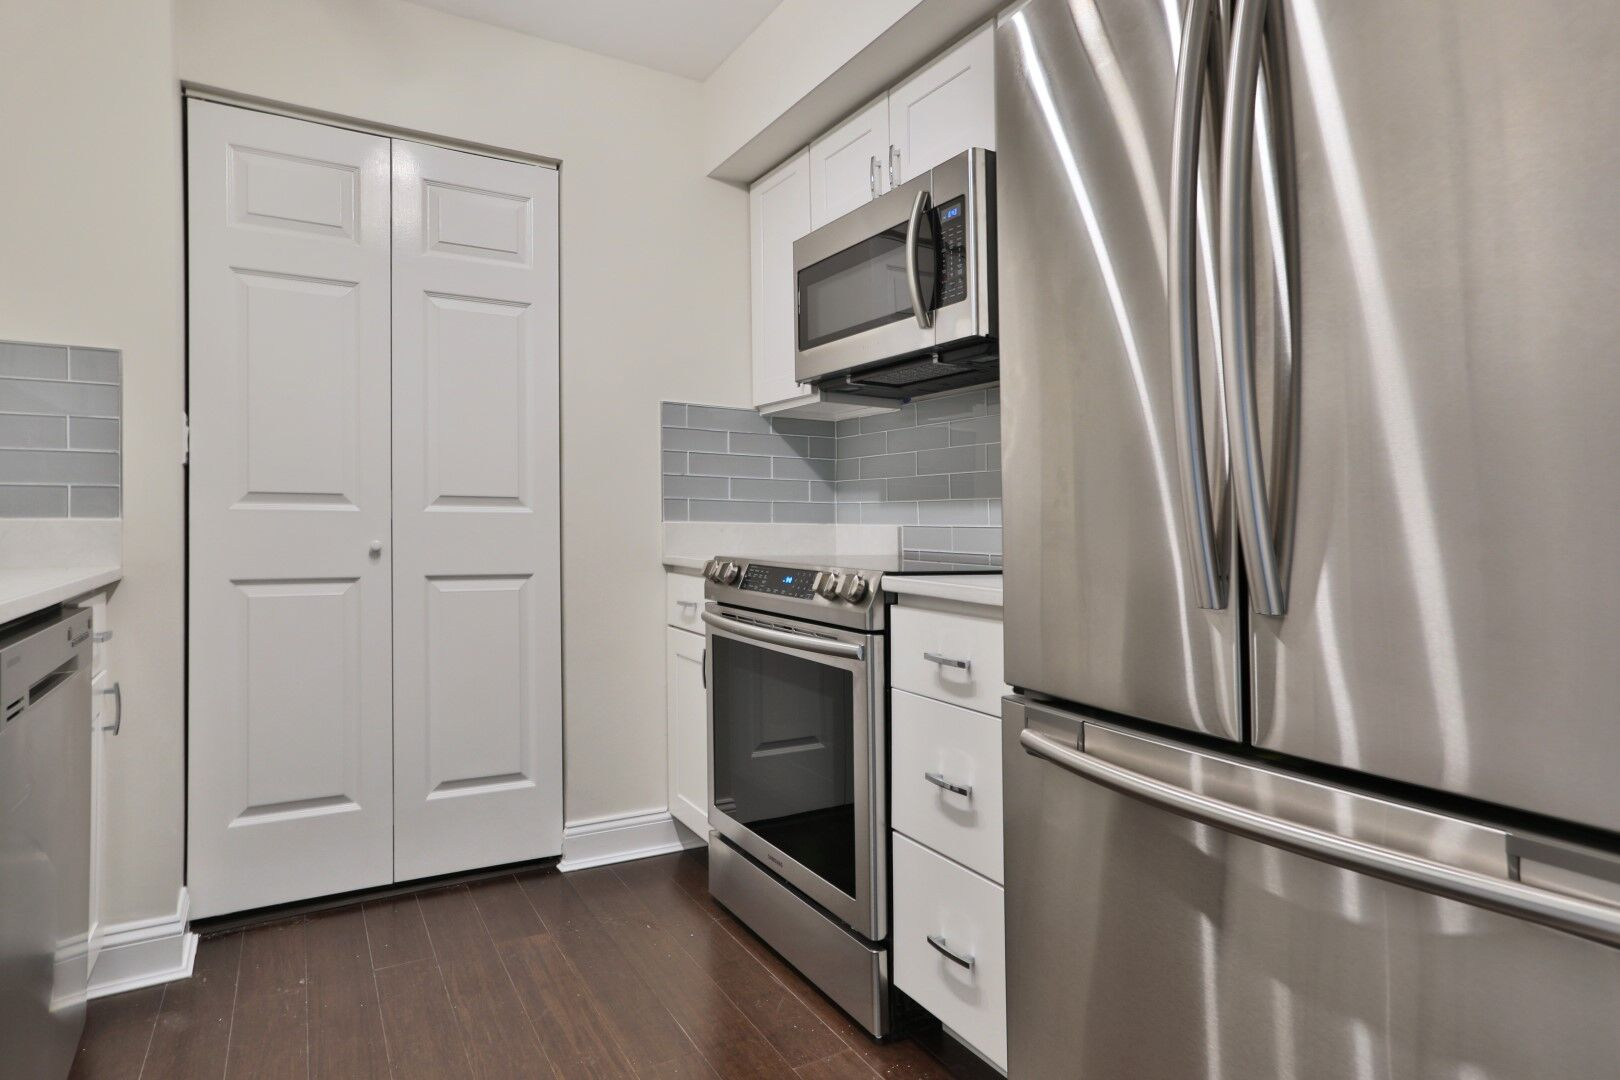 Boston, MA - 16 Harcourt Street, Unit 5D in Boston, MA, recently sold for it's full asking price of $1,125,000. This two bed, two full bath is located directly behind Copley Mall in Boston at the Residences at Copley Place. Thank you to Cerqueira Construction for making this unit look one-of-a-kind!